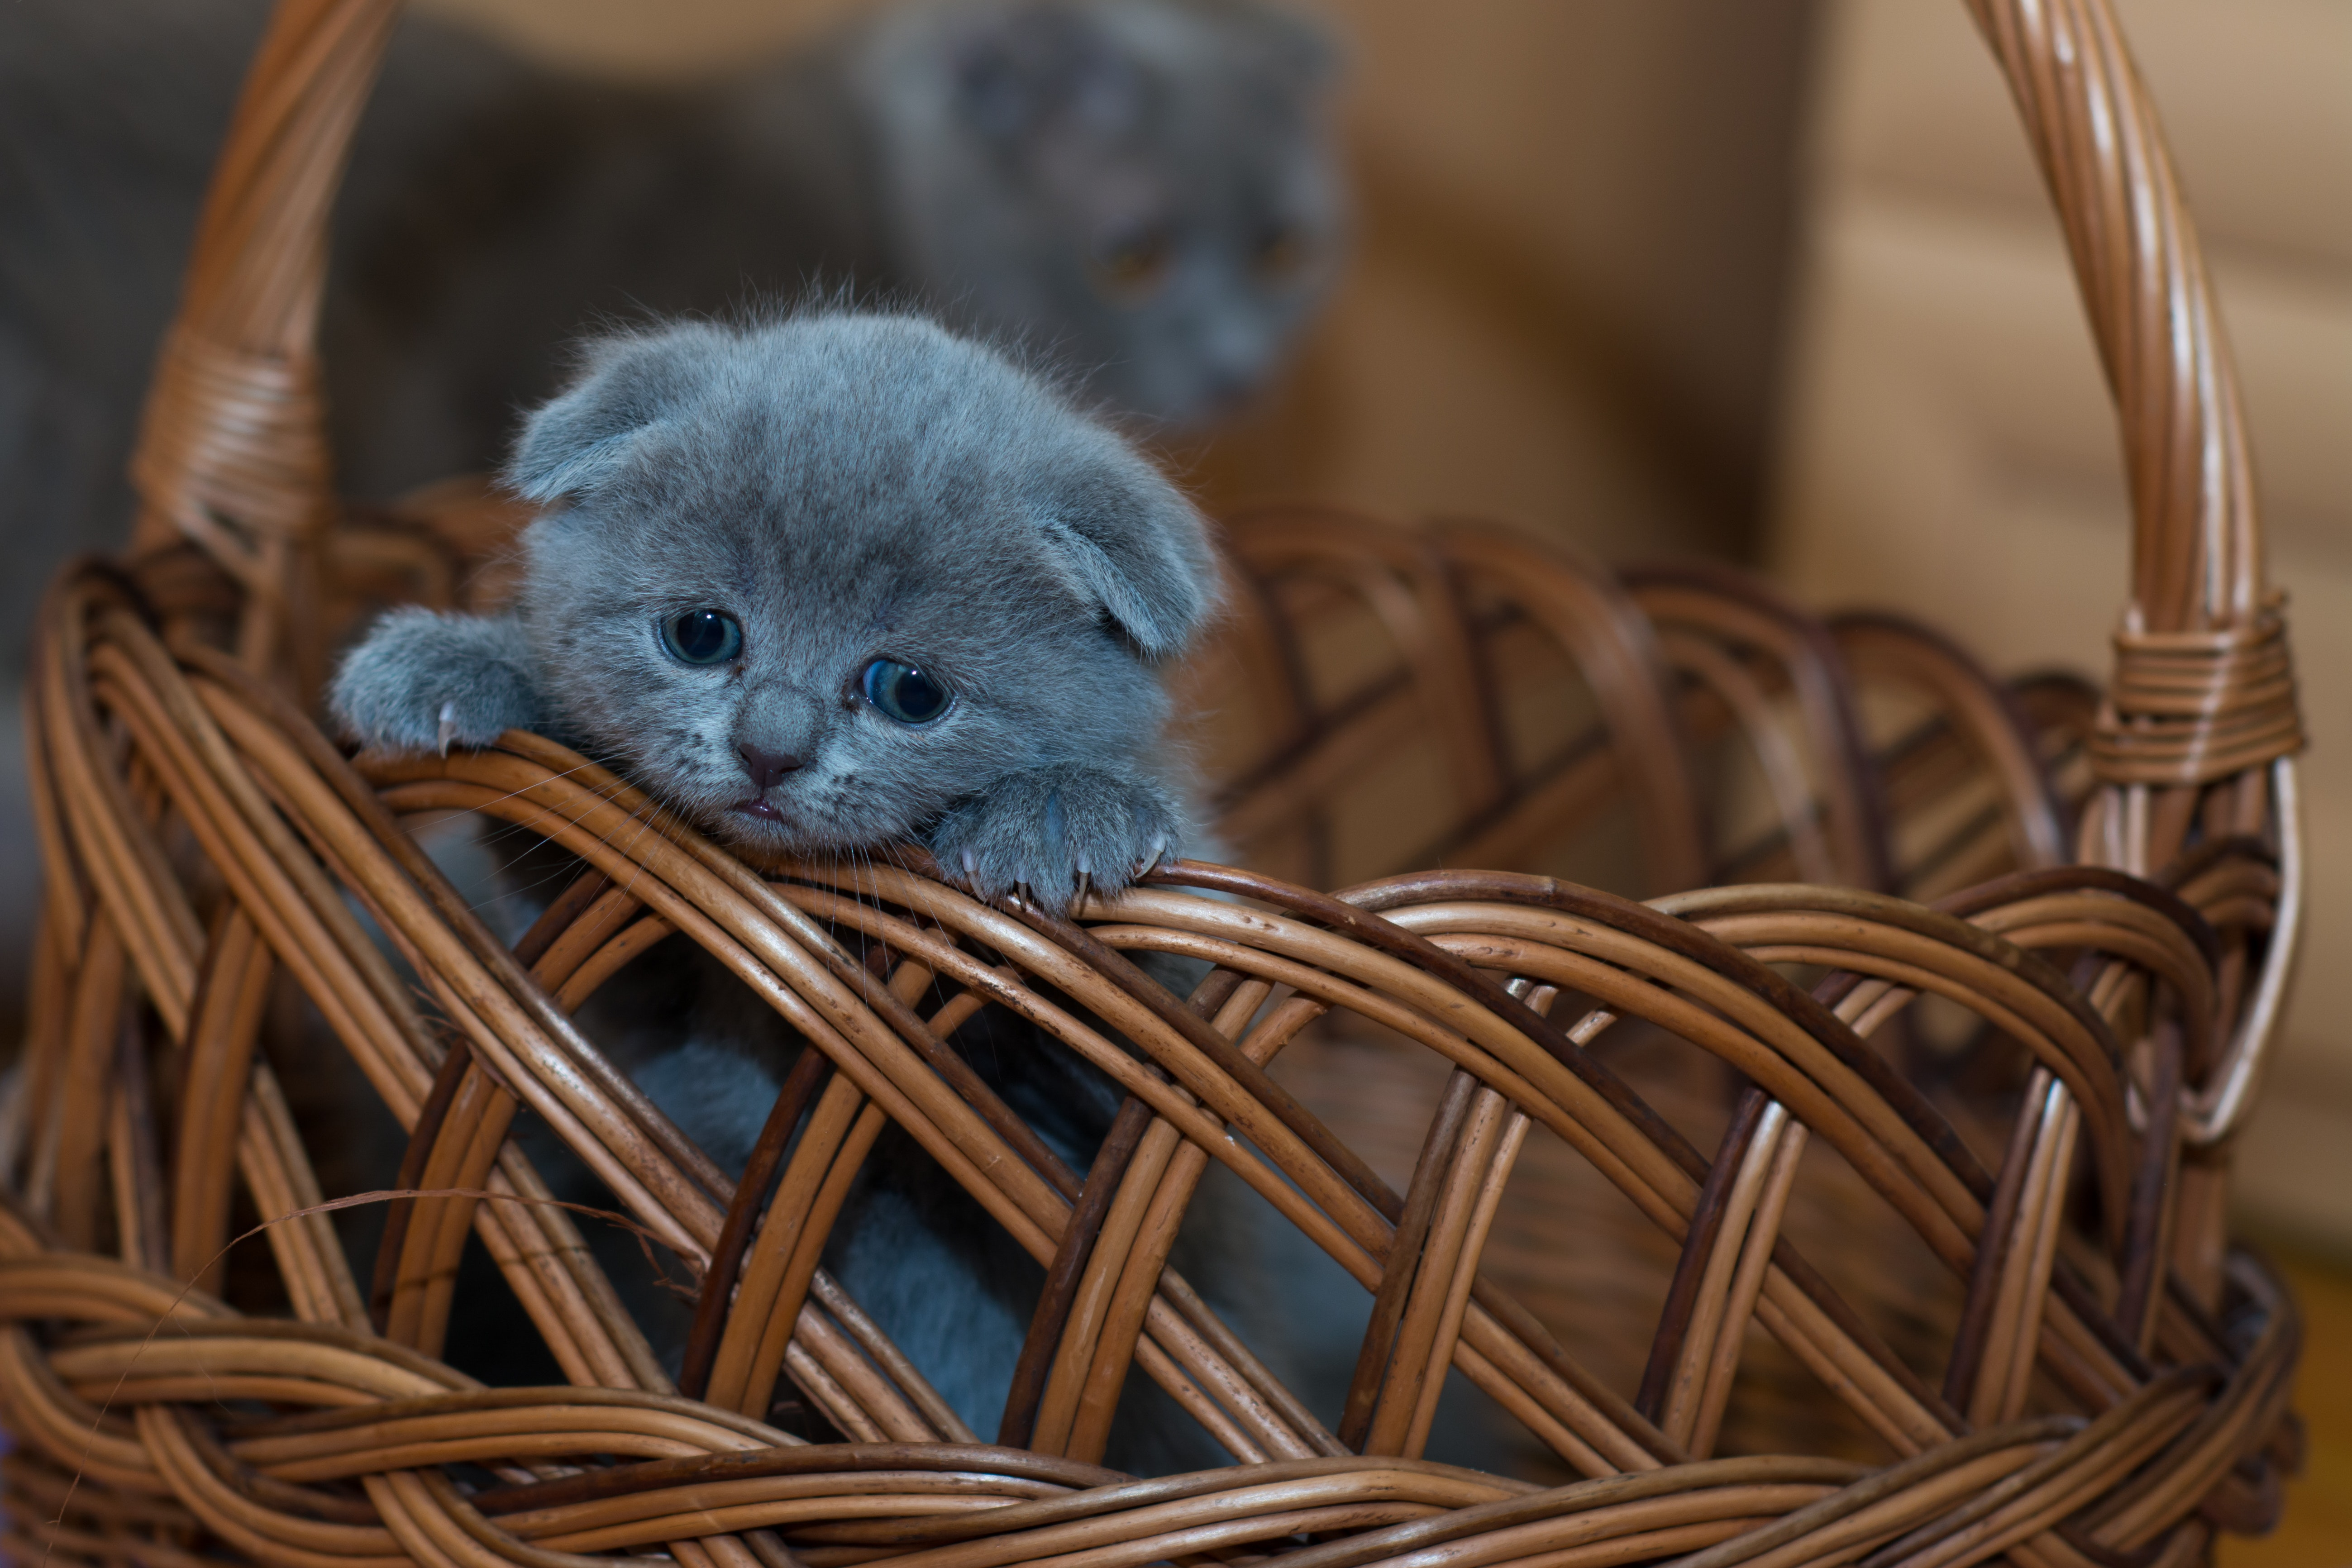 140301 download wallpaper Animals, Kitty, Kitten, Briton, Nice, Sweetheart, Sad, Basket screensavers and pictures for free